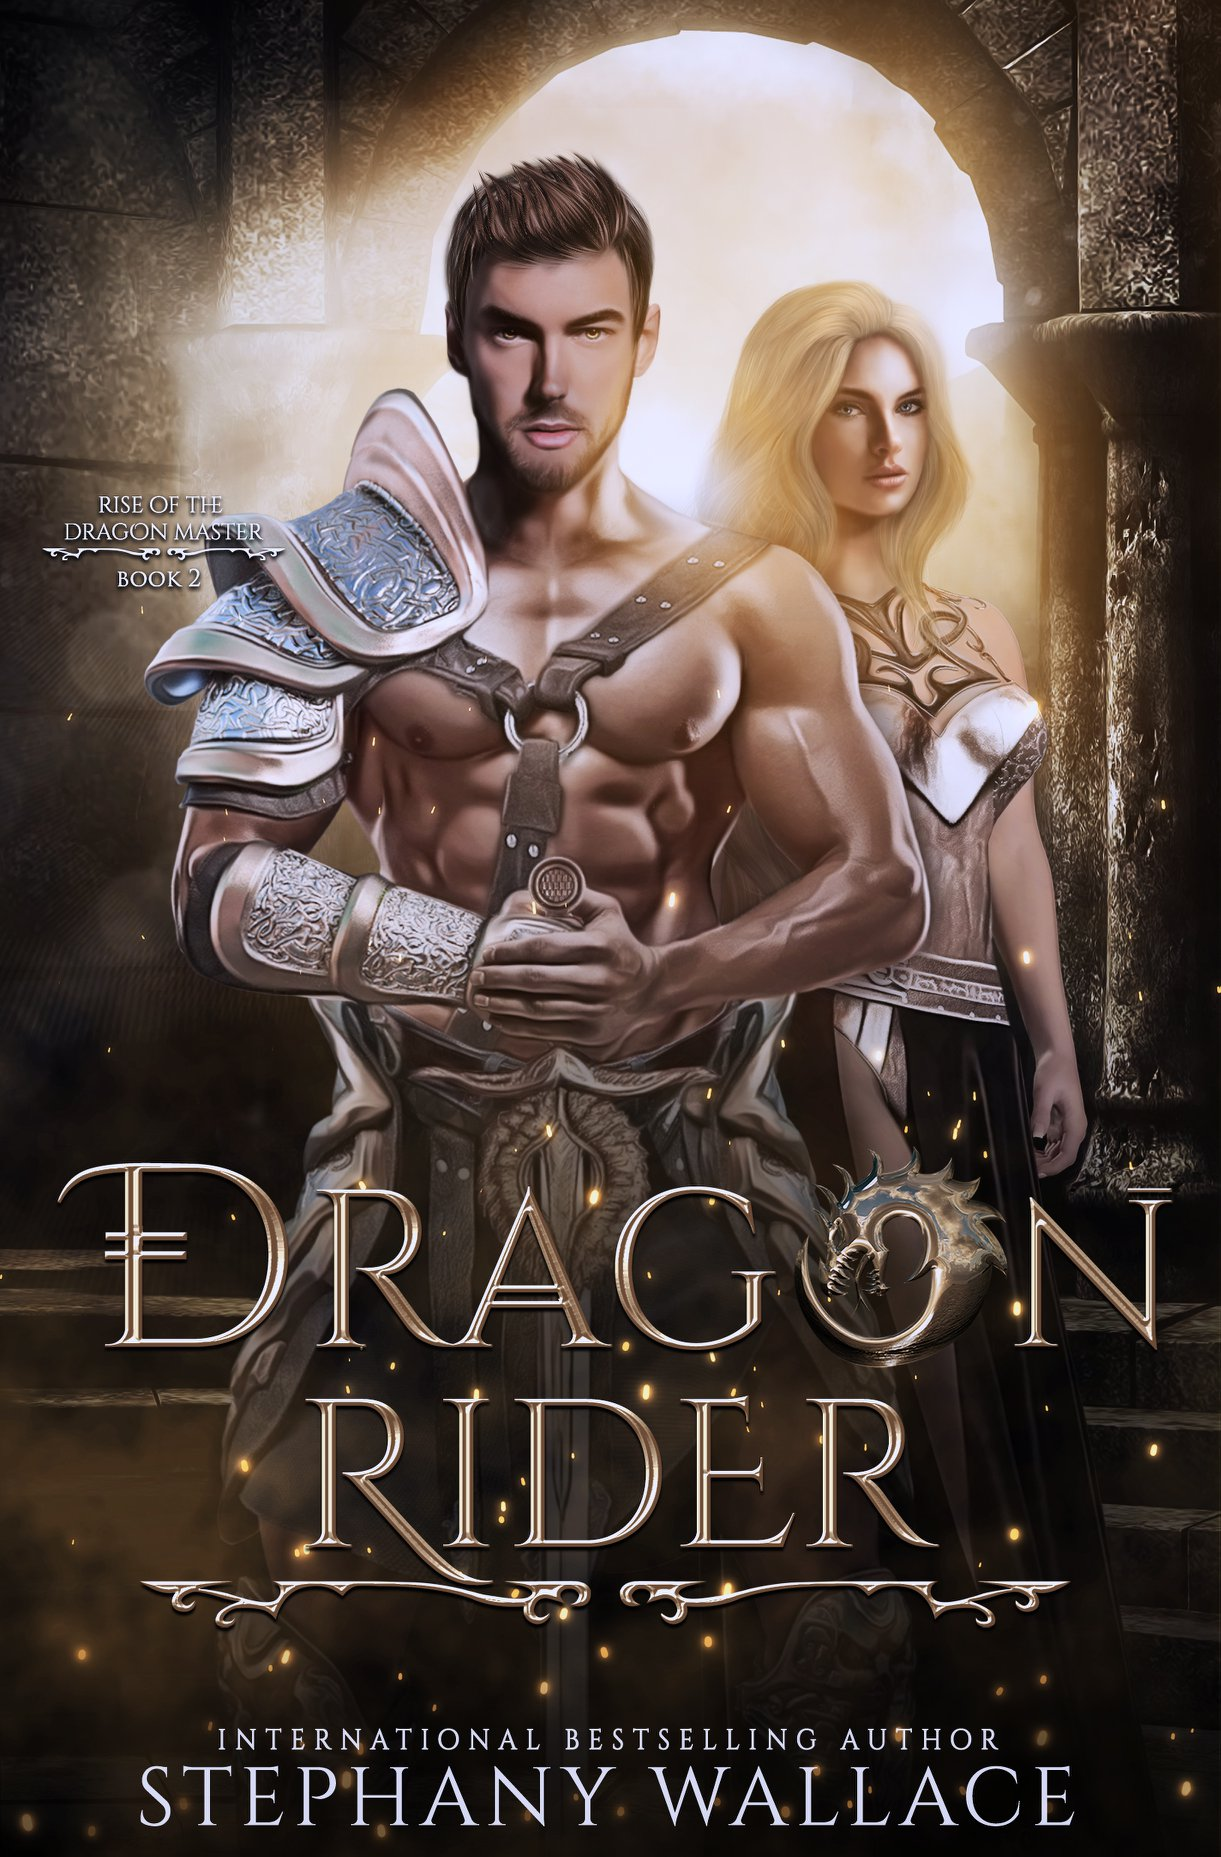 Dragon Rider (Rise of the Dragon Master Book 2) – Stephany Wallace